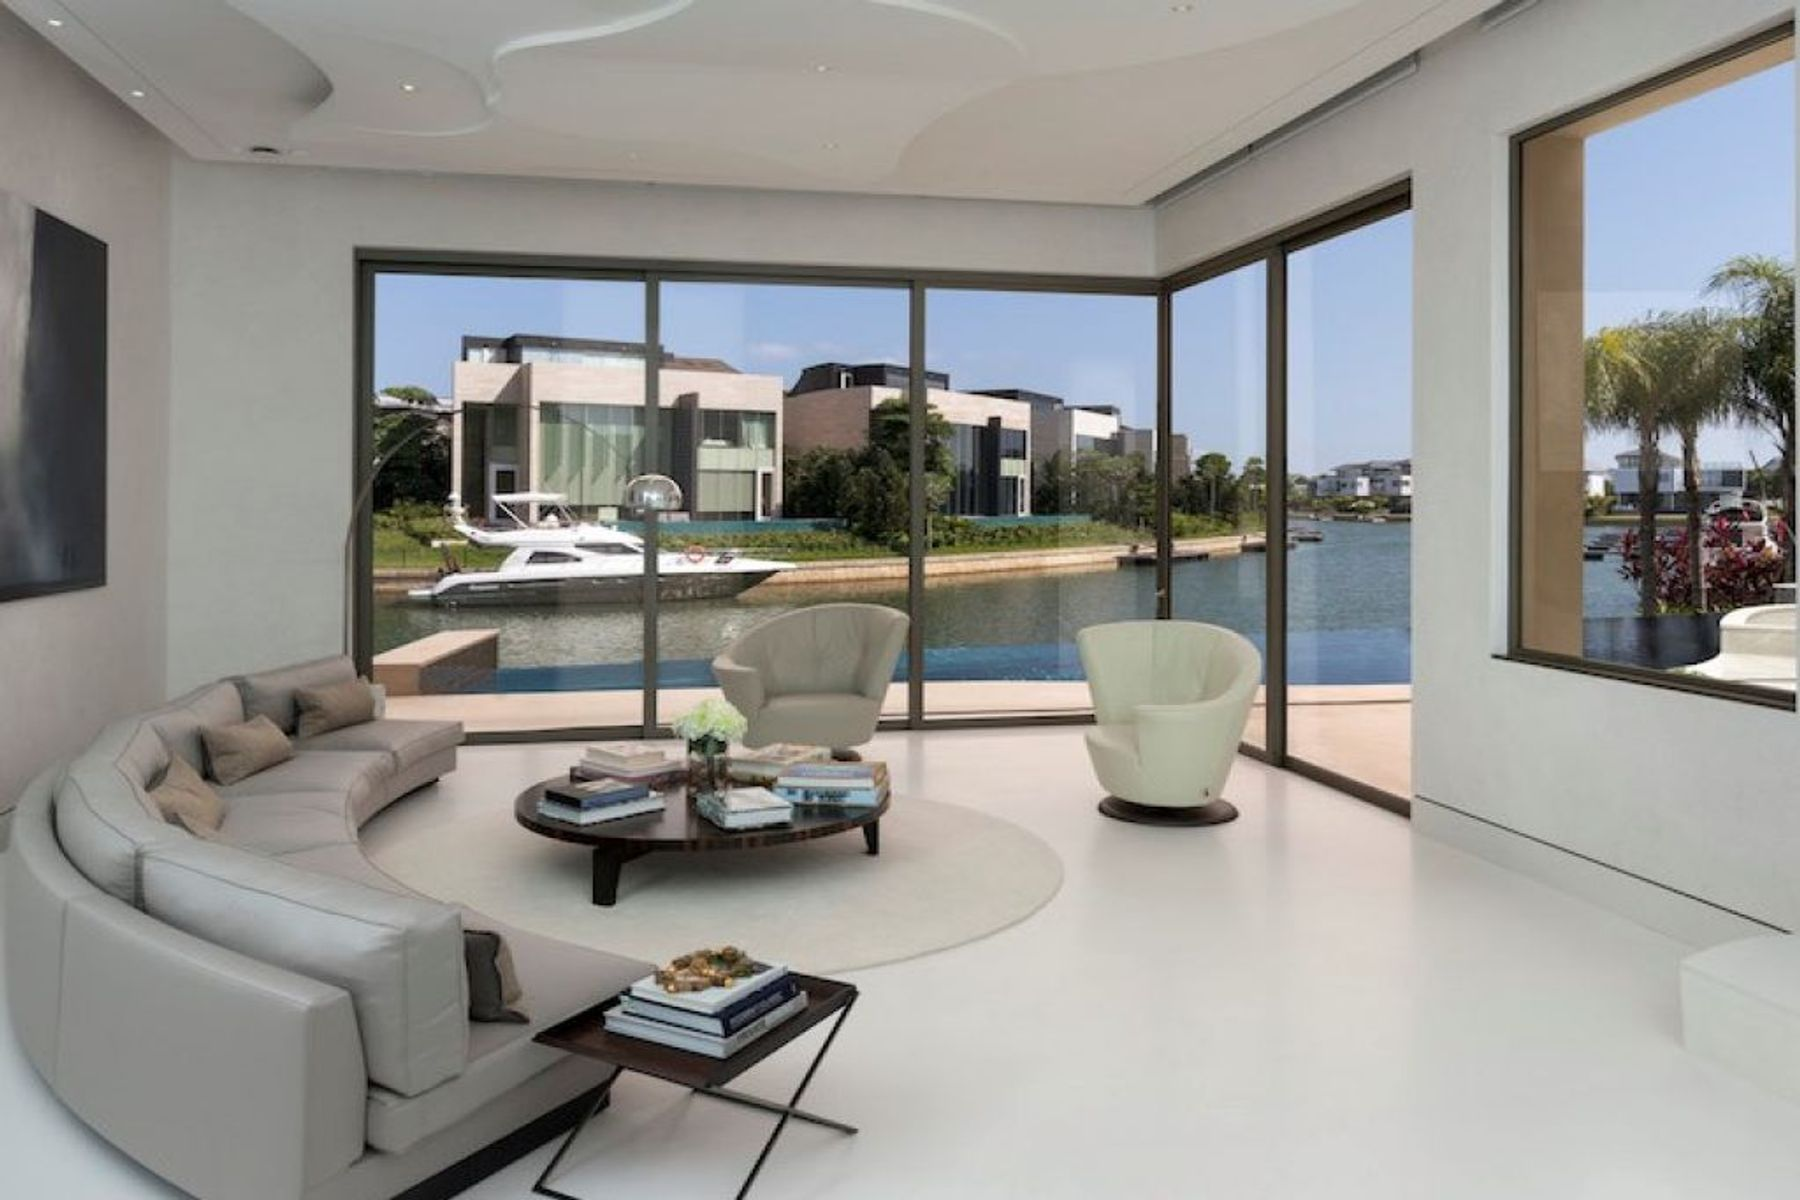 Other Residential for Sale at Sentosa Cove Waterfront Villa Singapore, Cities In Singapore Singapore